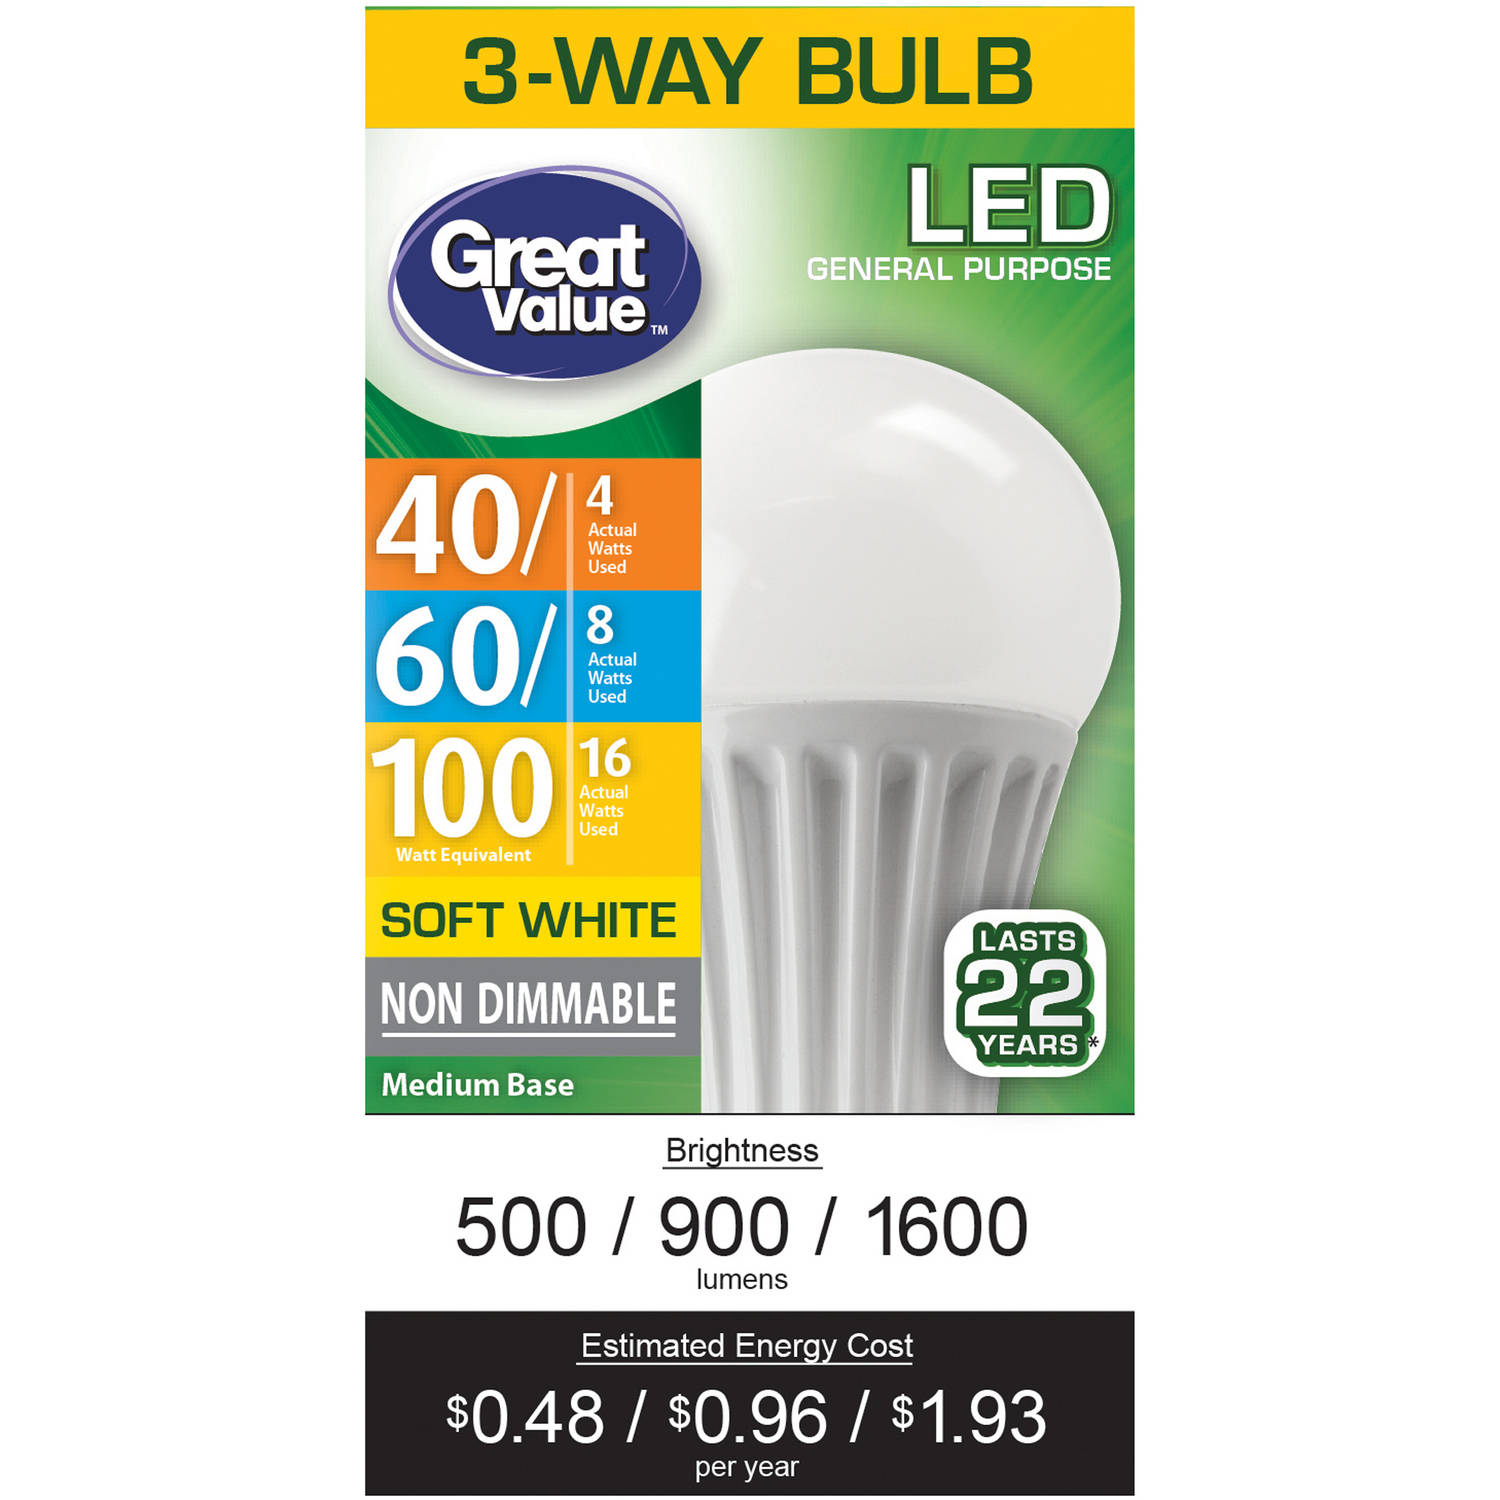 Great Value LED 3-Way (E26) Light Bulb, 4-16W (40-100 Equivalent), Soft White